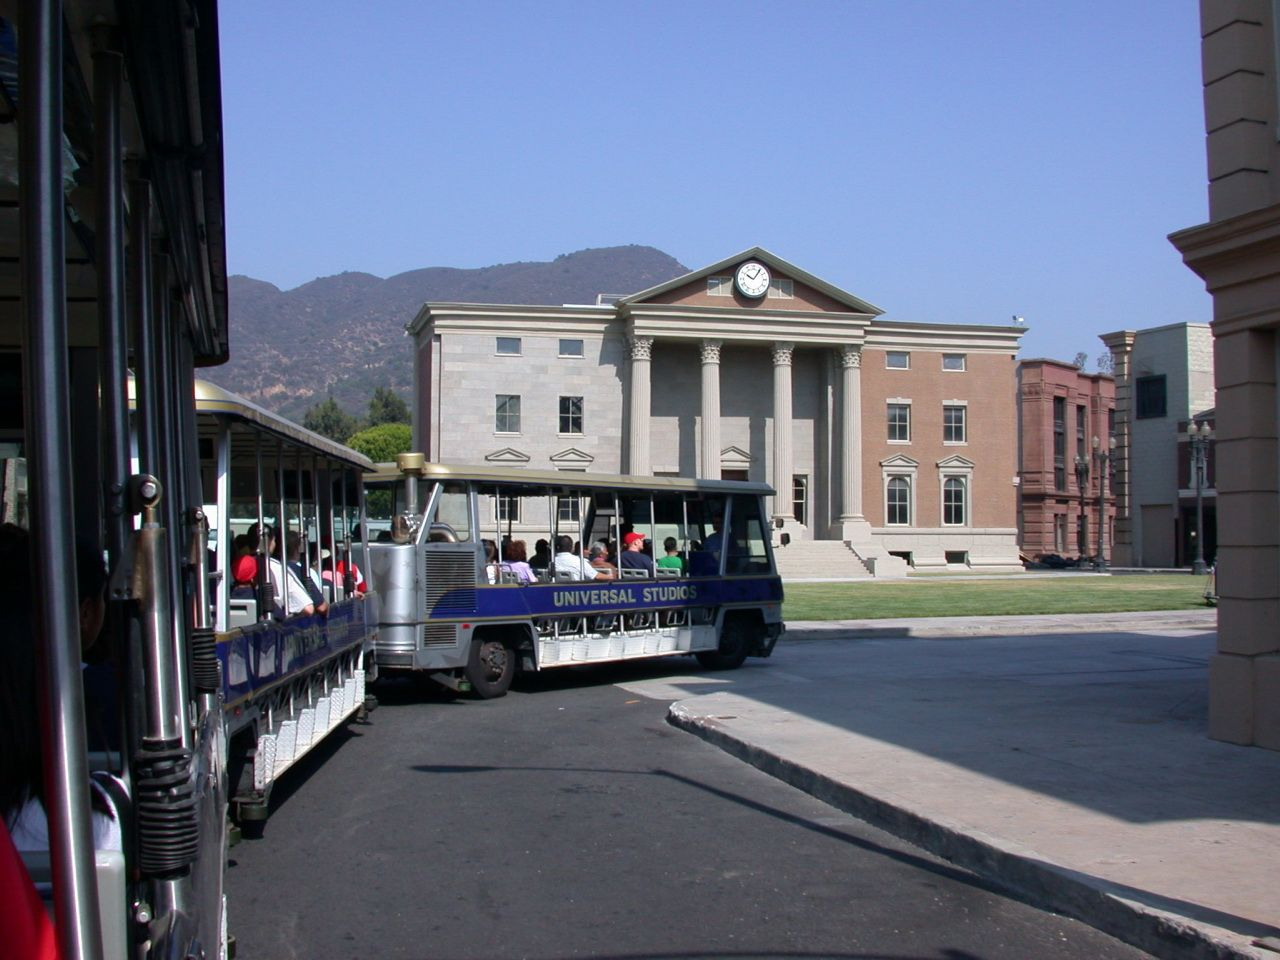 Back to the future set at Universal Studios Hollywood